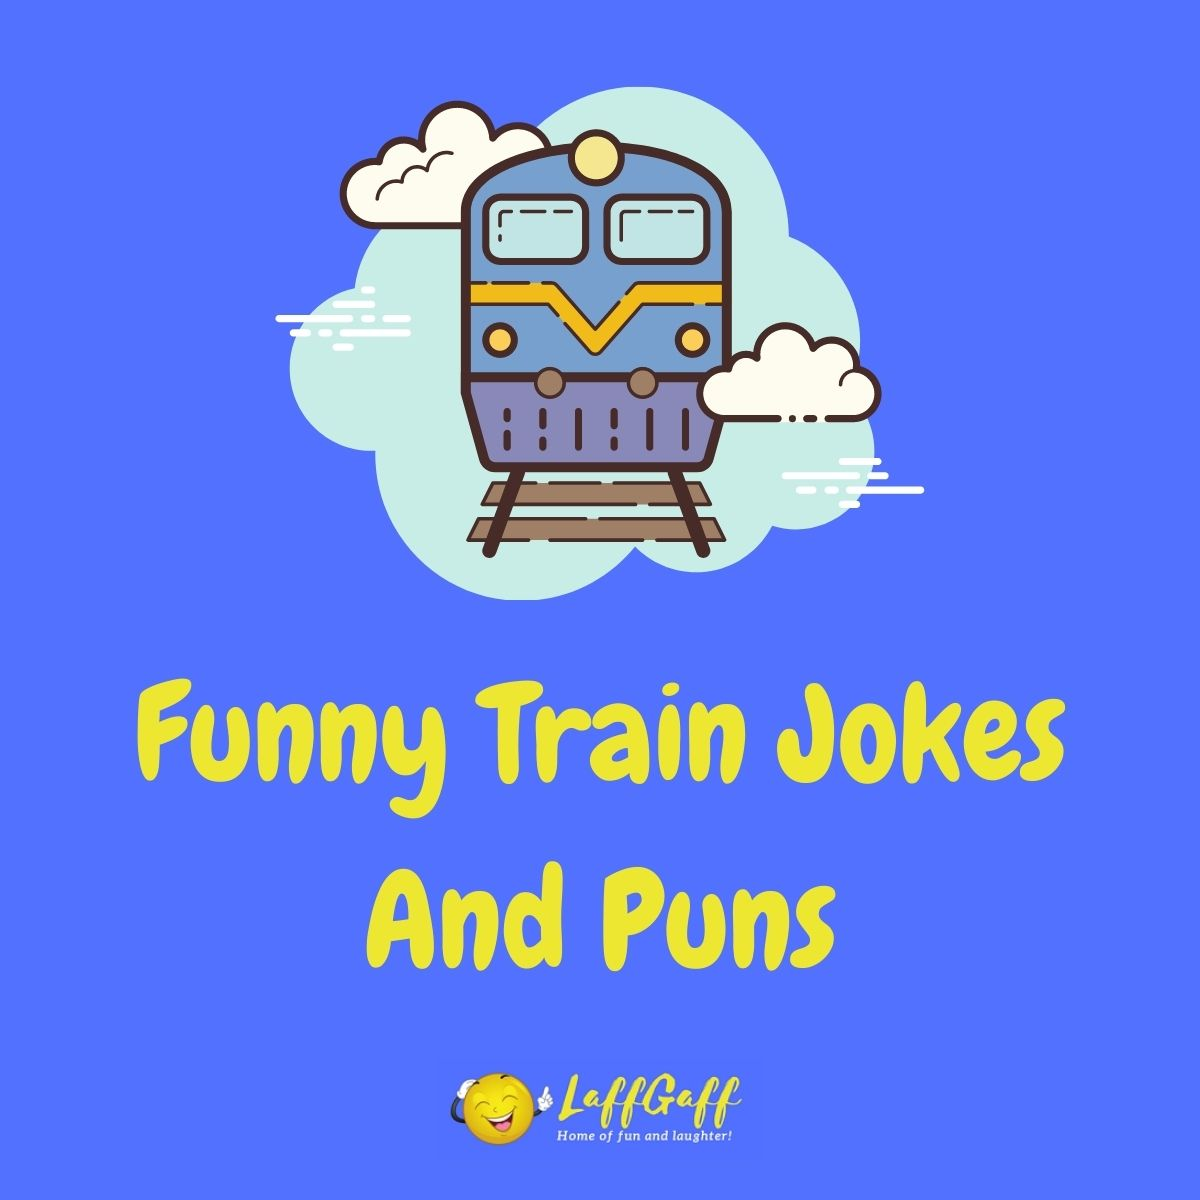 Featured image for a page of funny train jokes and puns.